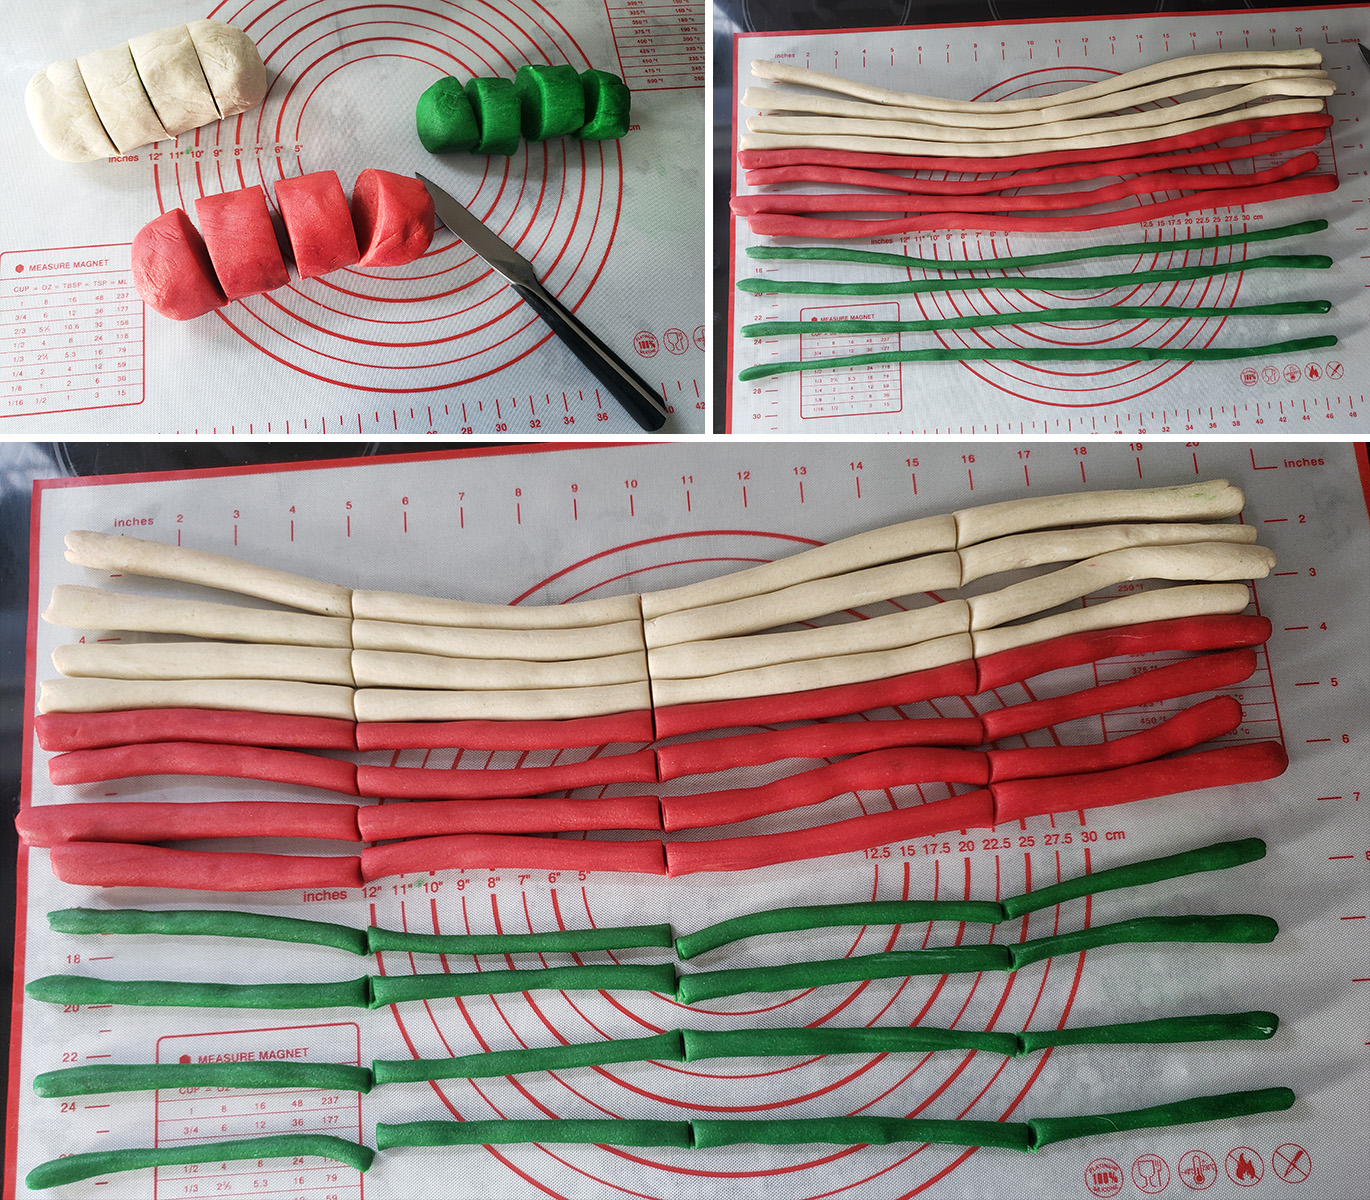 A 3 image collage showing the steps of dividing the dough out.